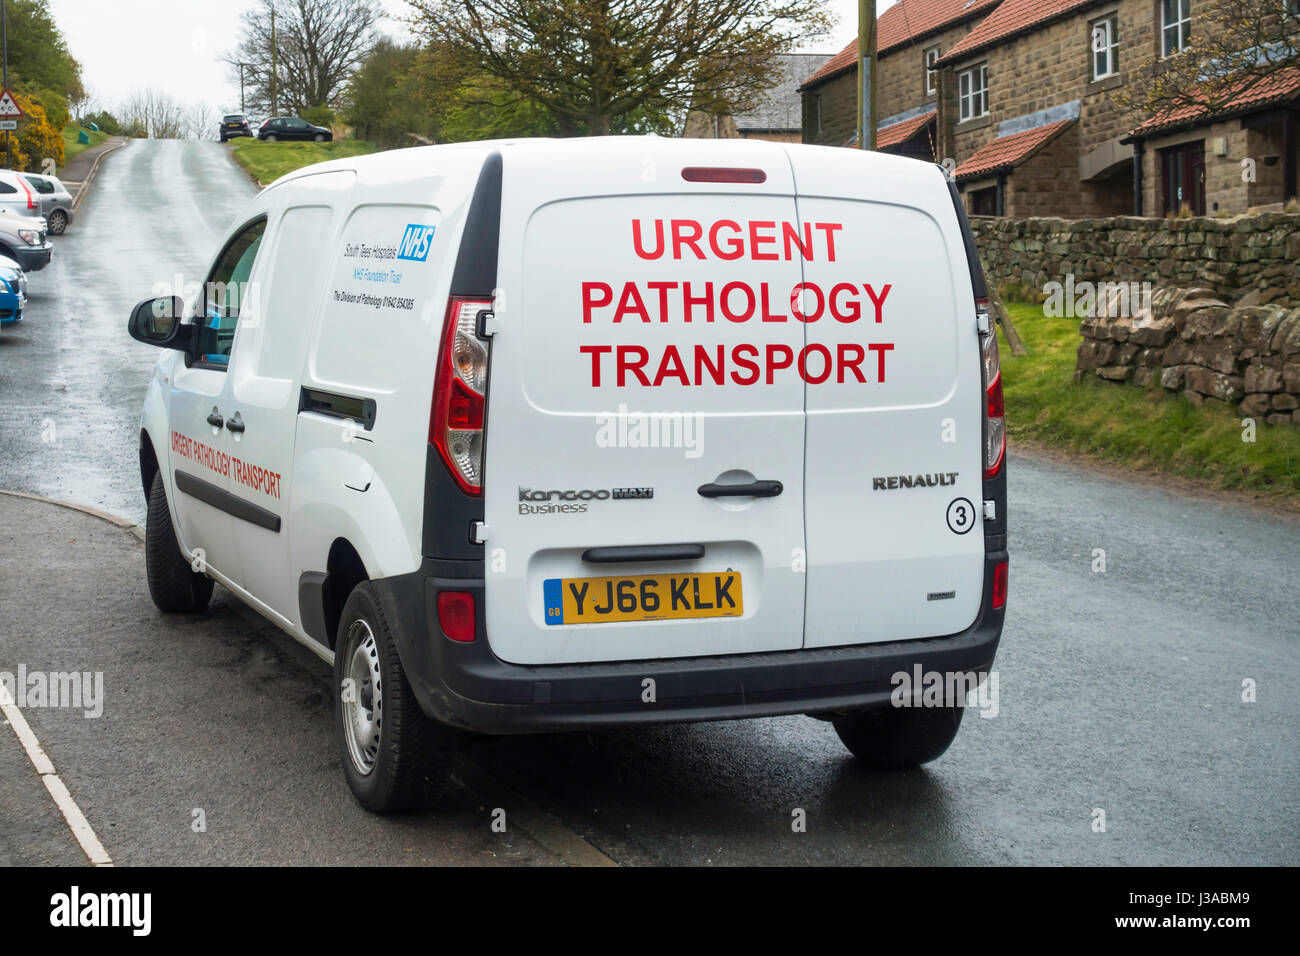 A small white National Health Service Van marked Urgent Pathology Transport in an English country village Stock Photo